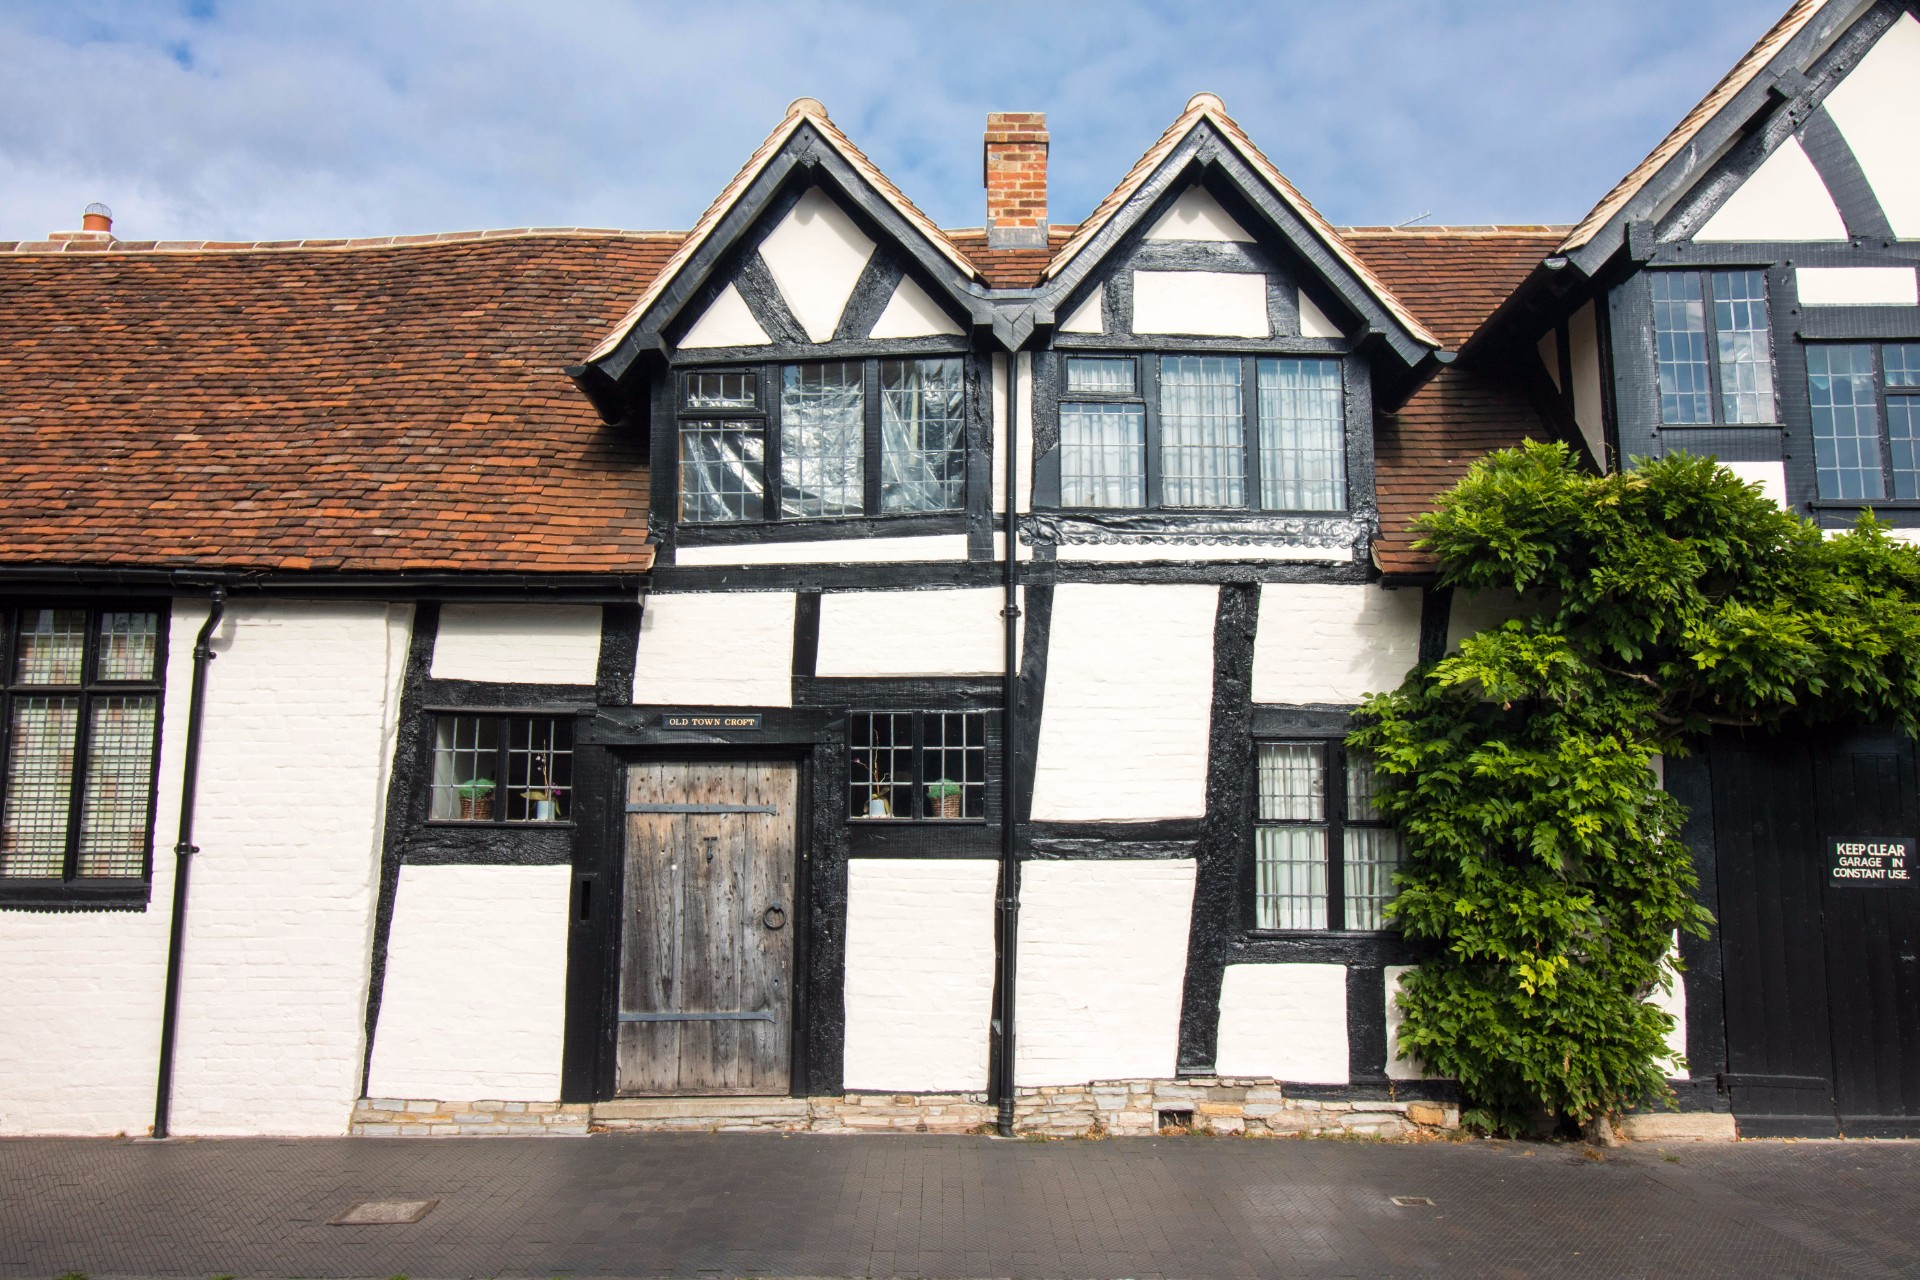 One Day In Shakespeares Birthplace Exploring Stratford Upon Avon The West Midlands